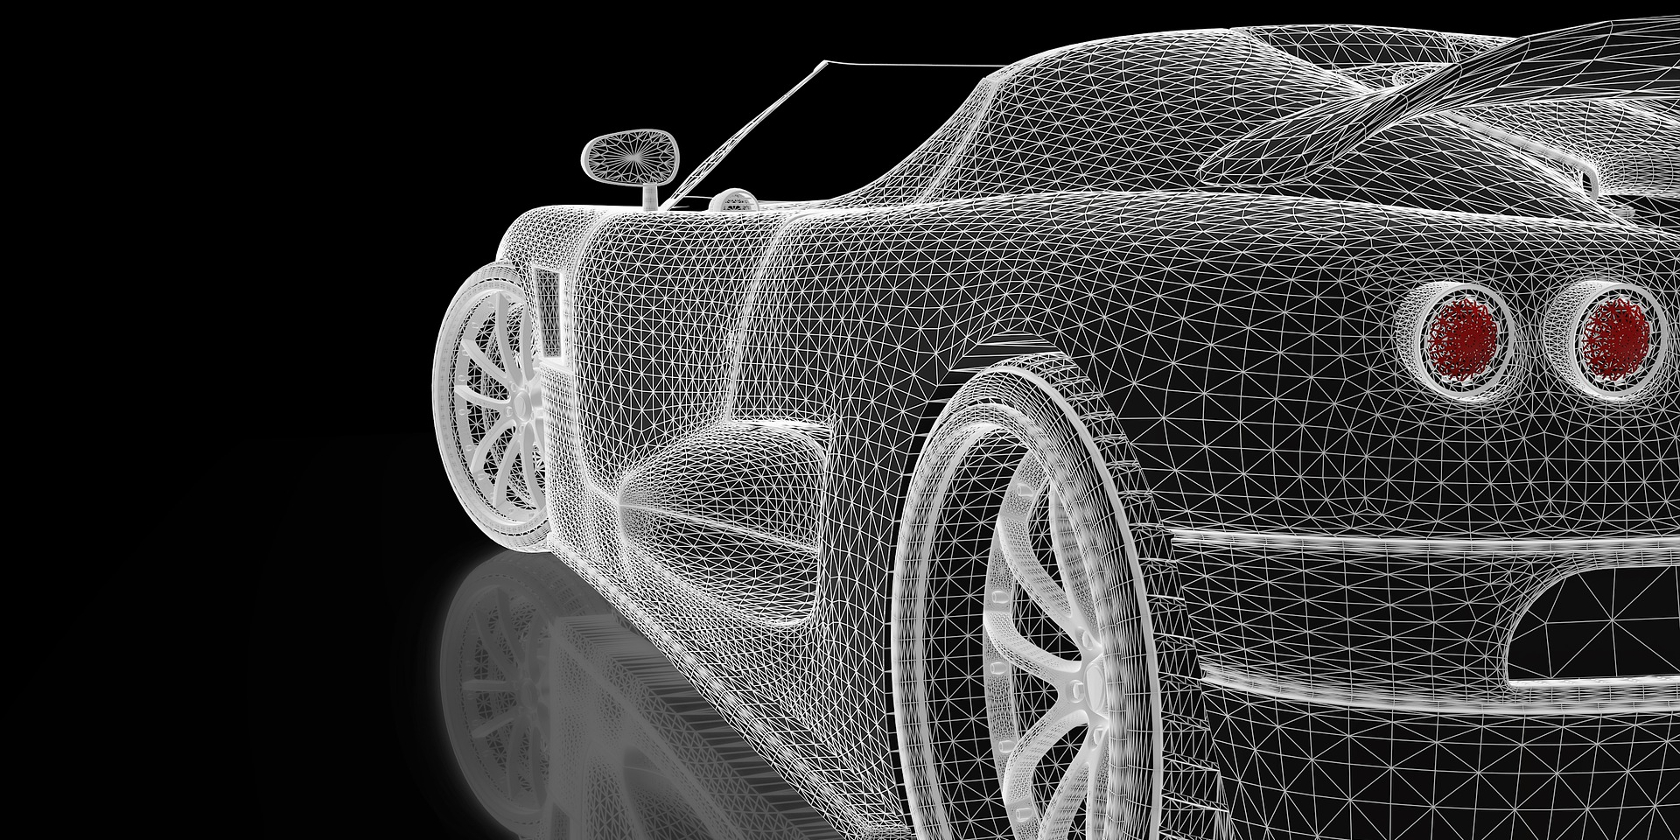 Nihon Parkerizing Targets Auto Parts Sector With Multimaterial Bonding Technology